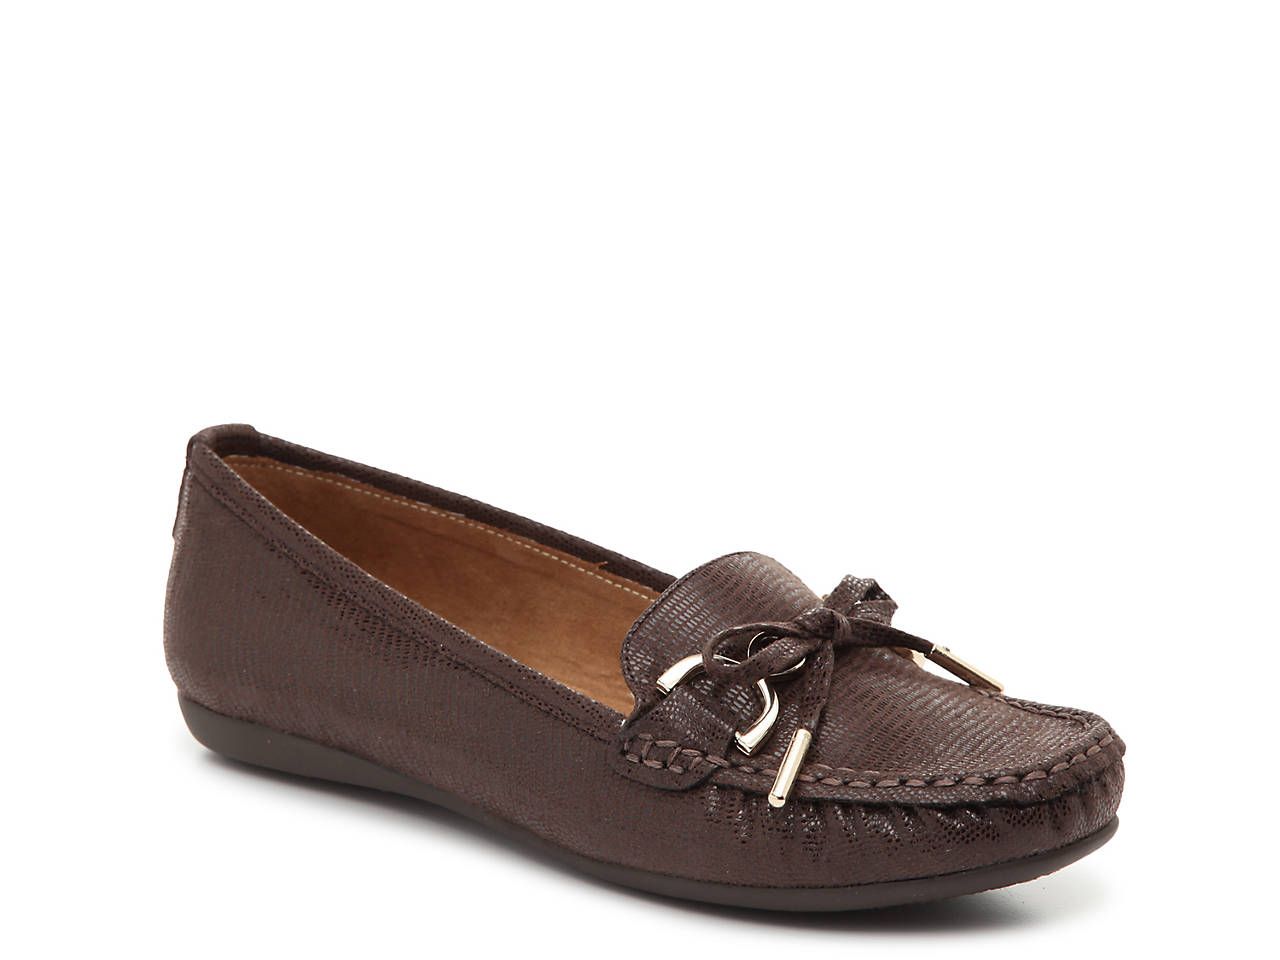 8ed70162be6f Gloria Vanderbilt Lady Loafer Women s Shoes